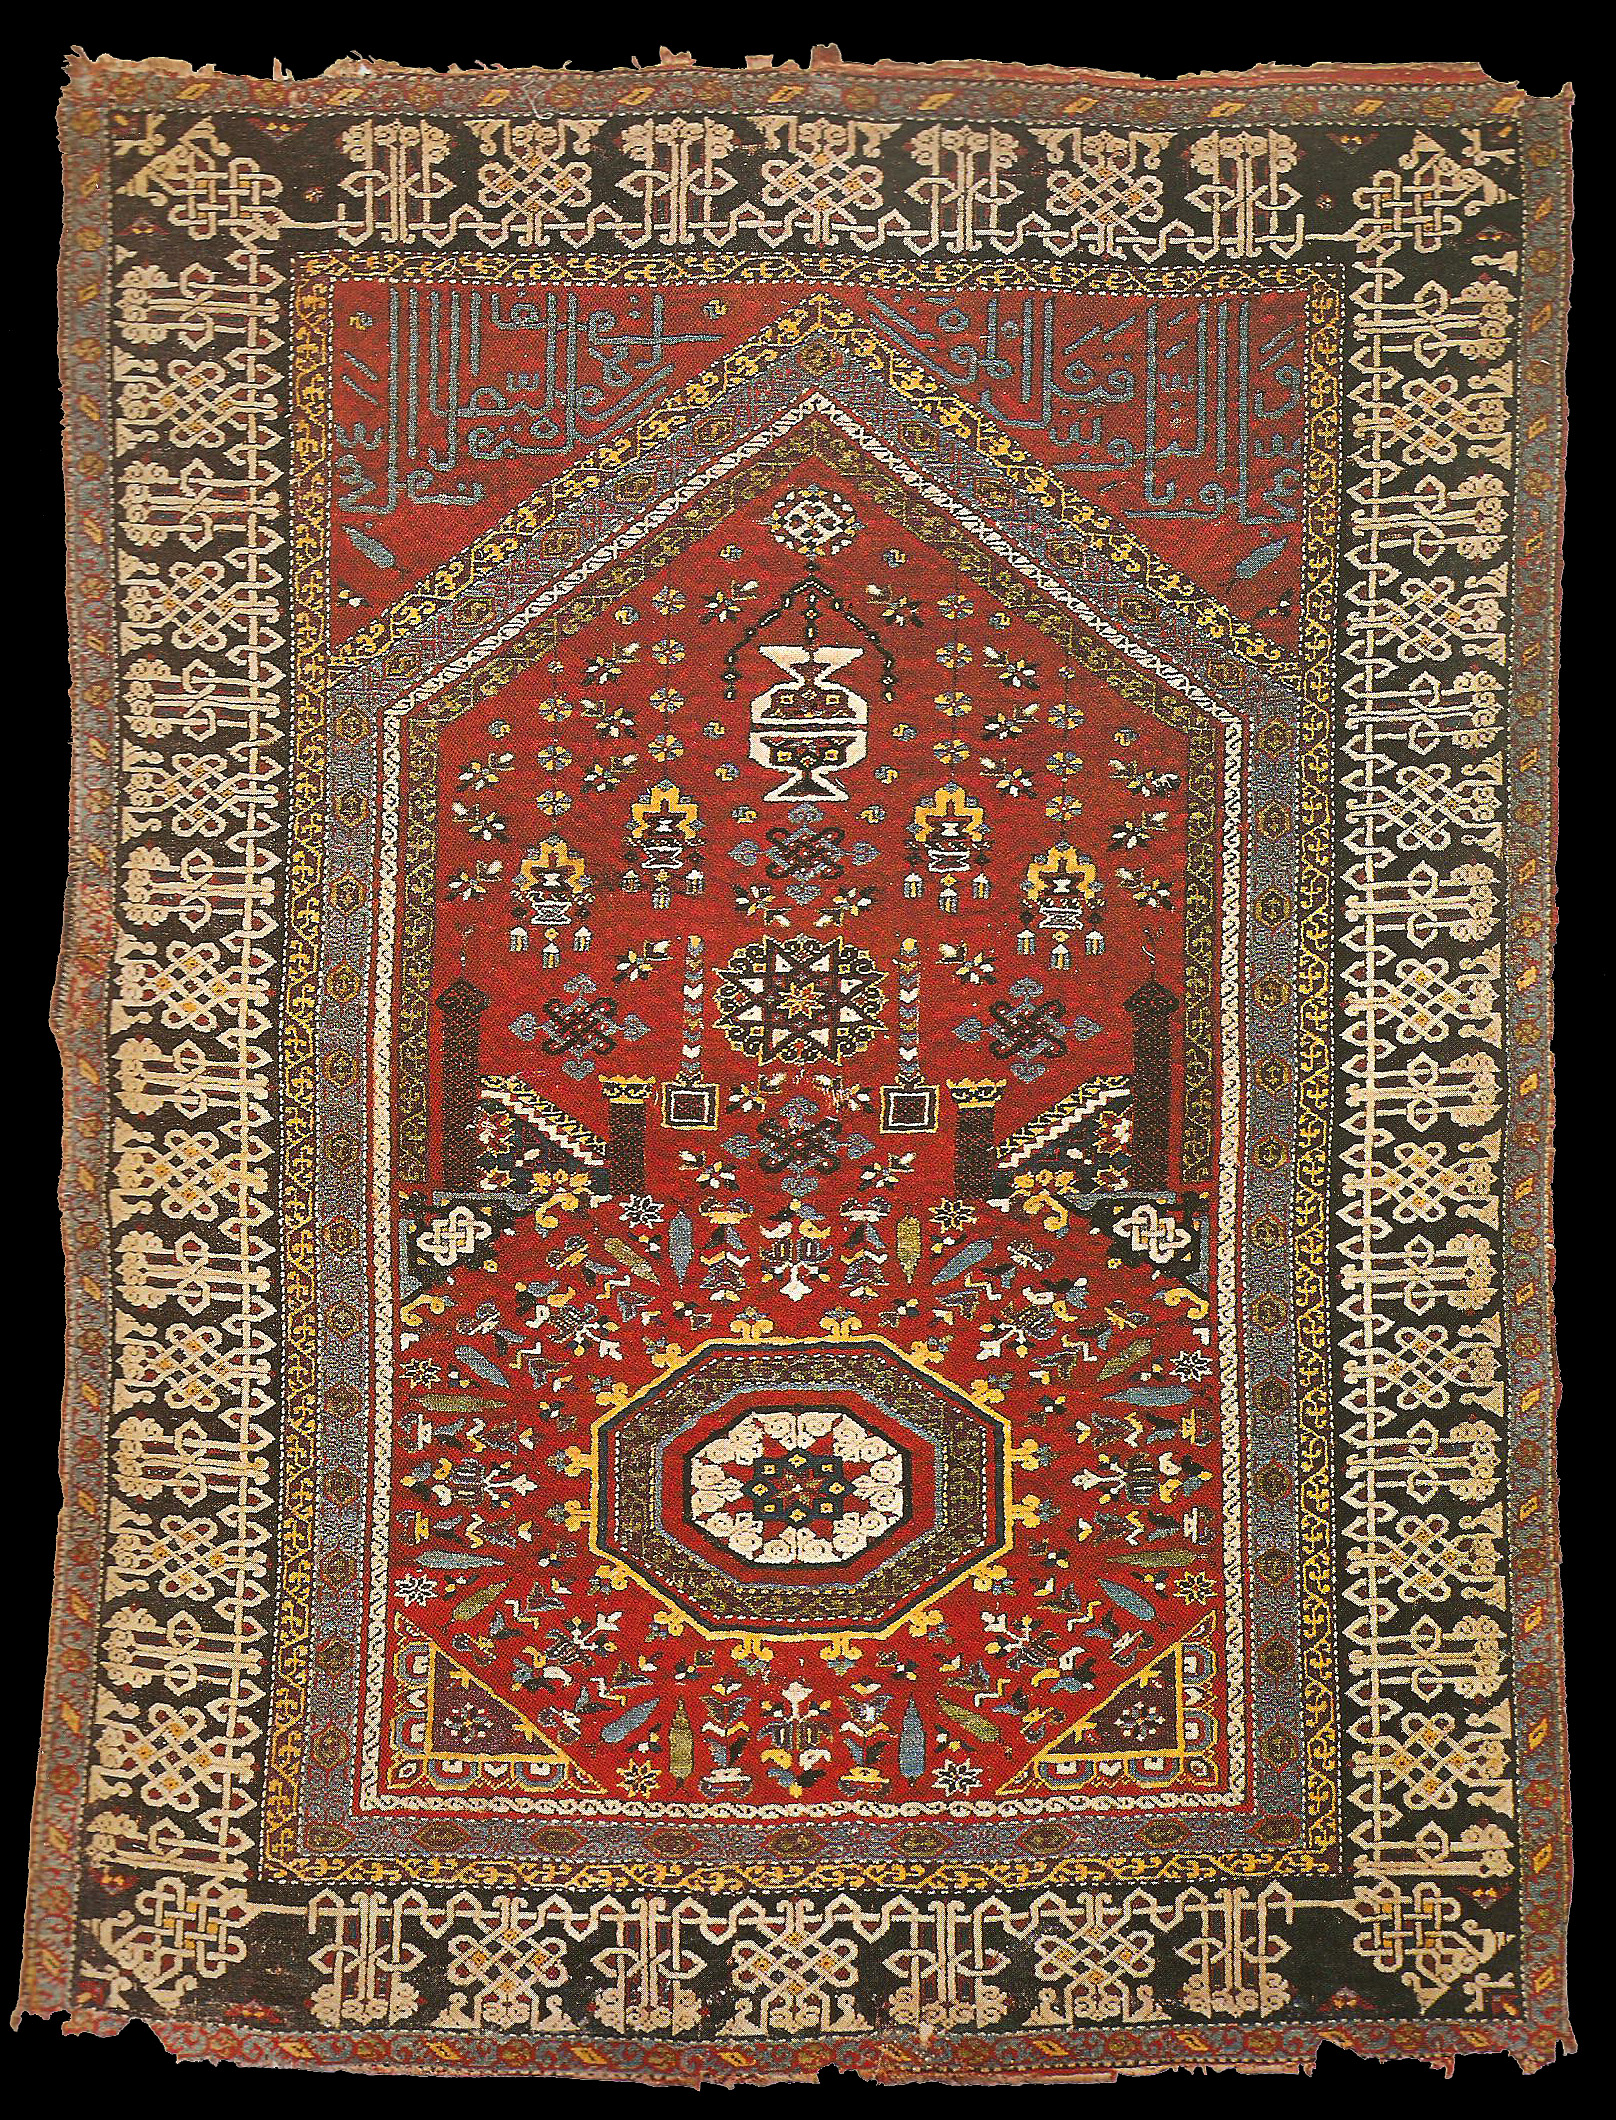 Early Western Anatolian workshop carpet, 15th century